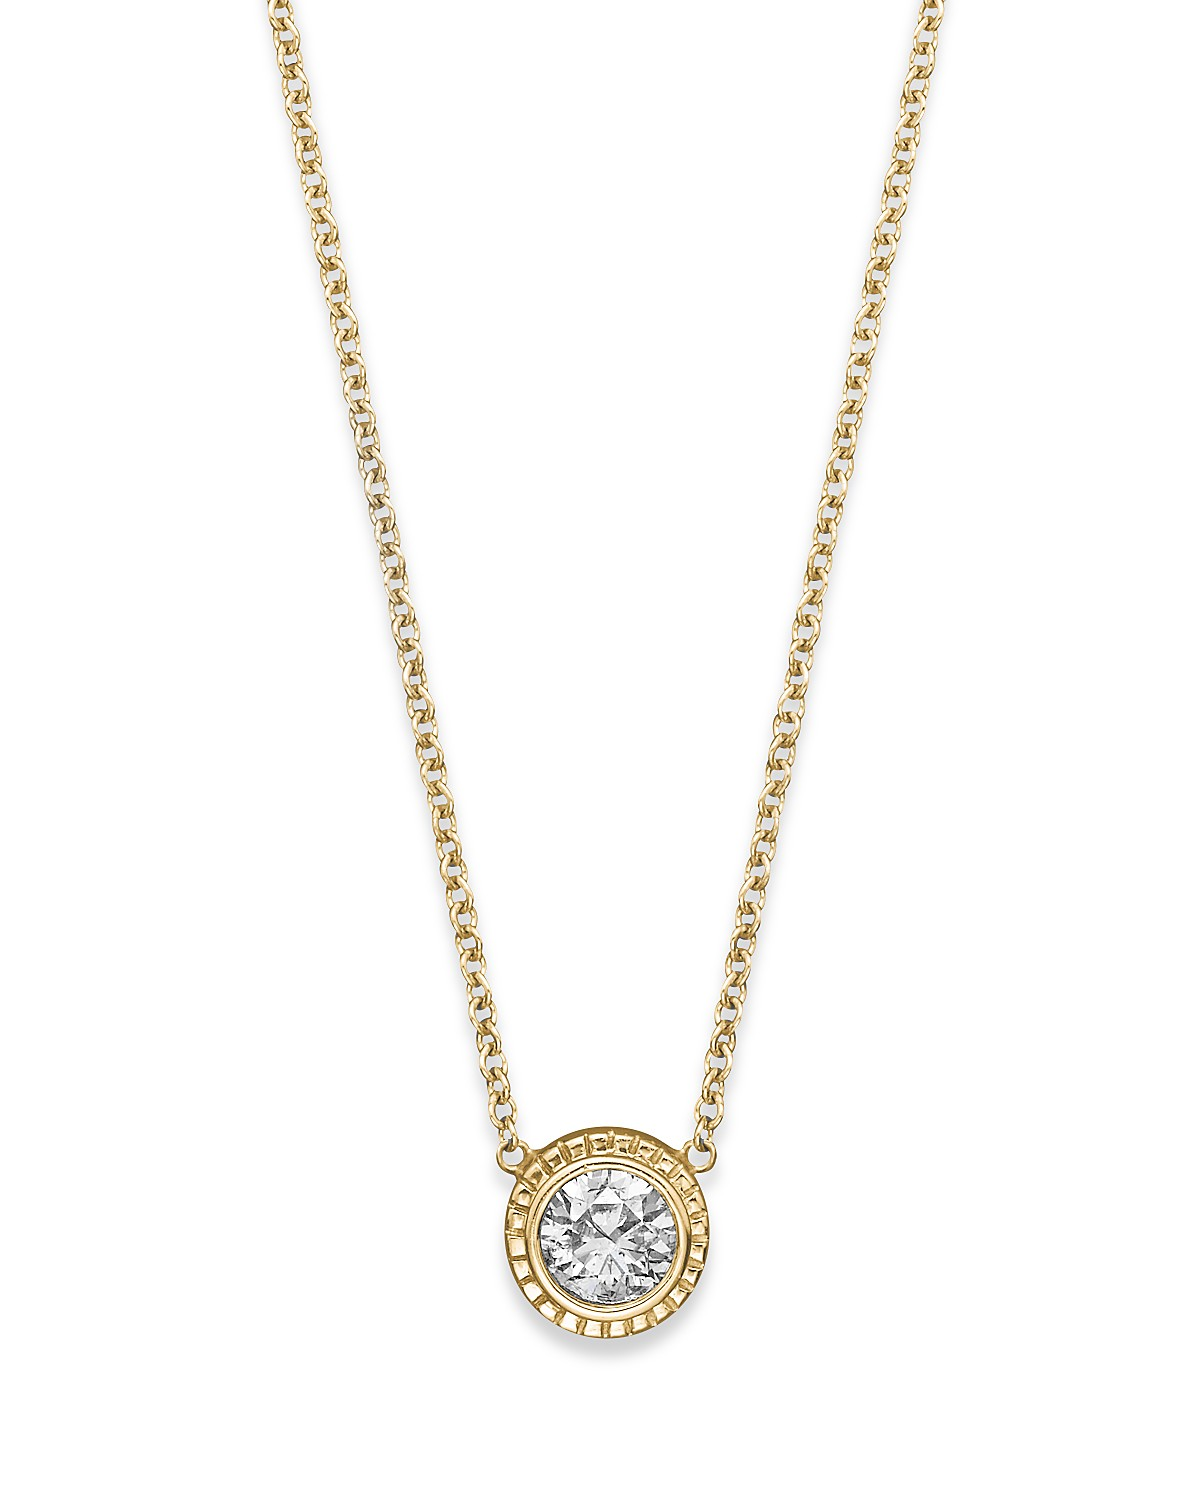 Bloomingdales diamond pendant necklace in 14k yellow gold 025 ct pdpimgshortdescription aloadofball Gallery